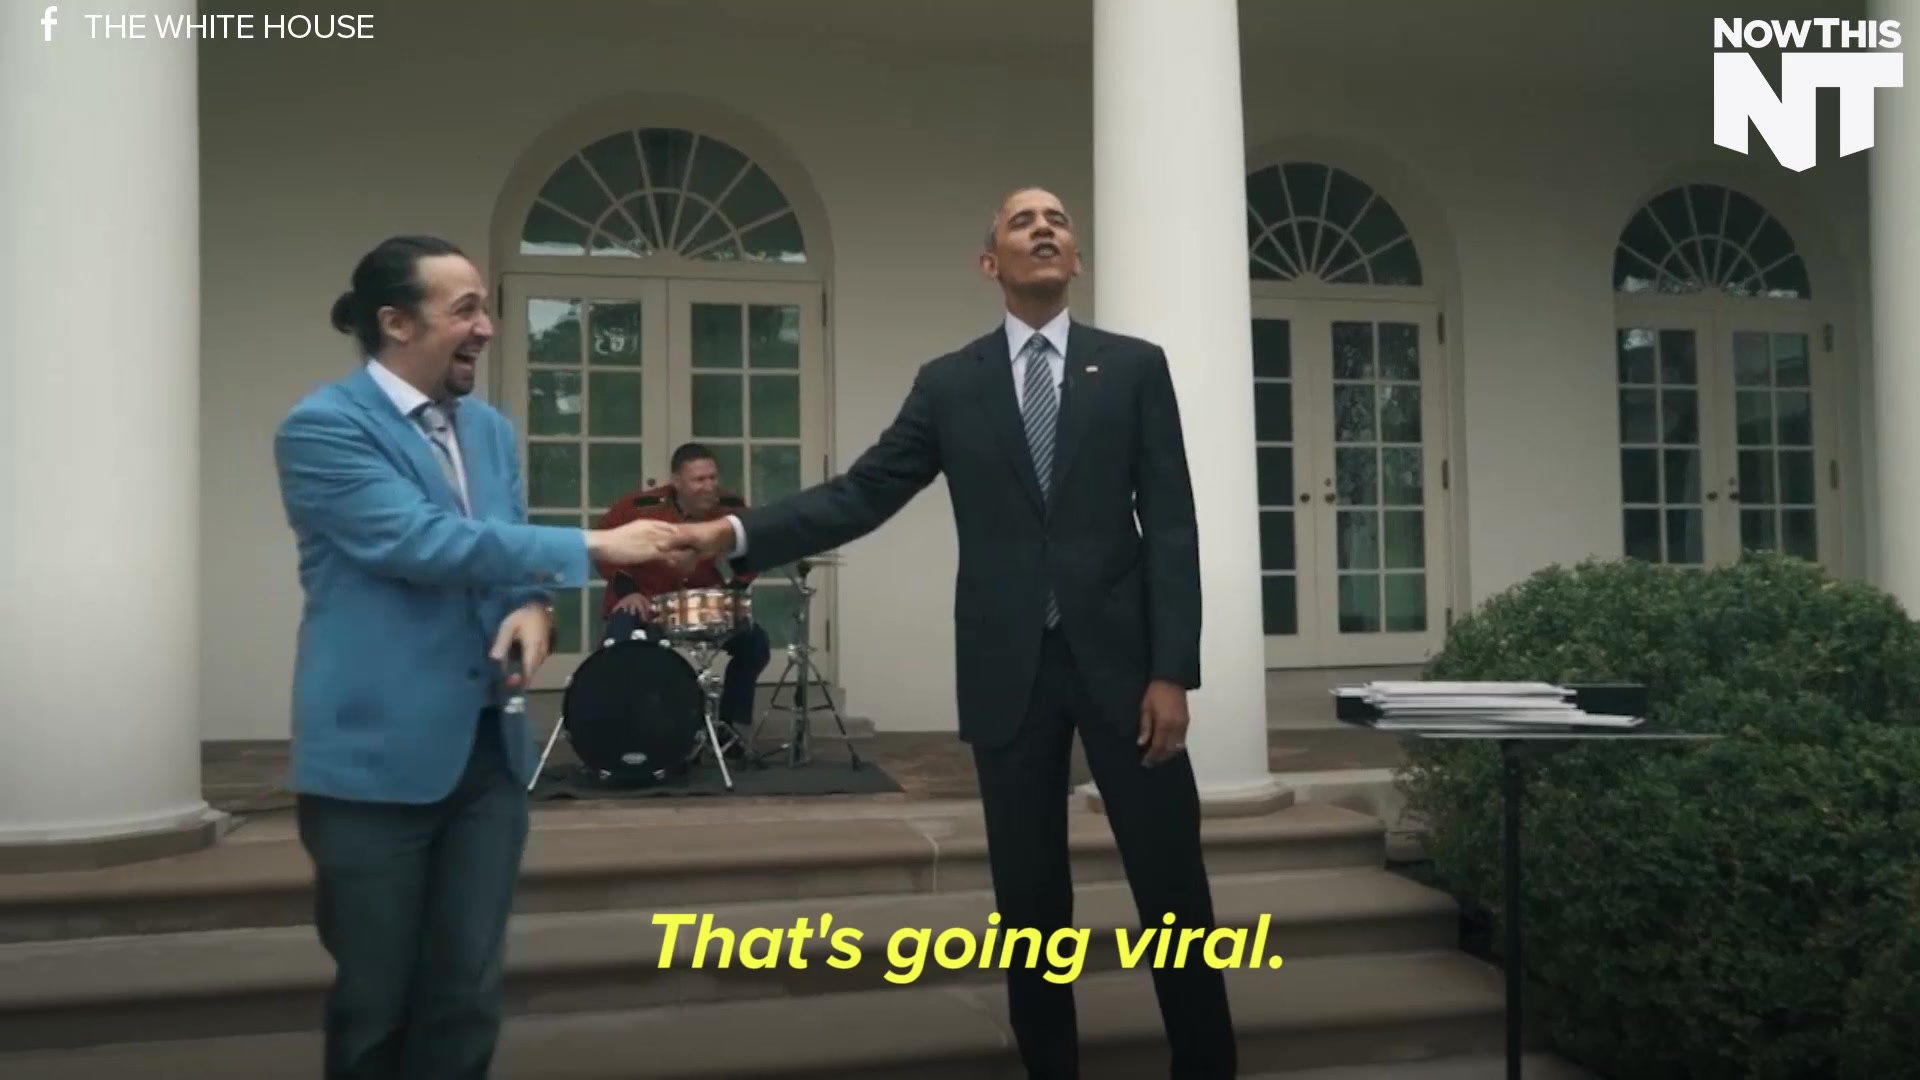 Star Of Broadway's Hamilton Freestyles With President Obama At The White House